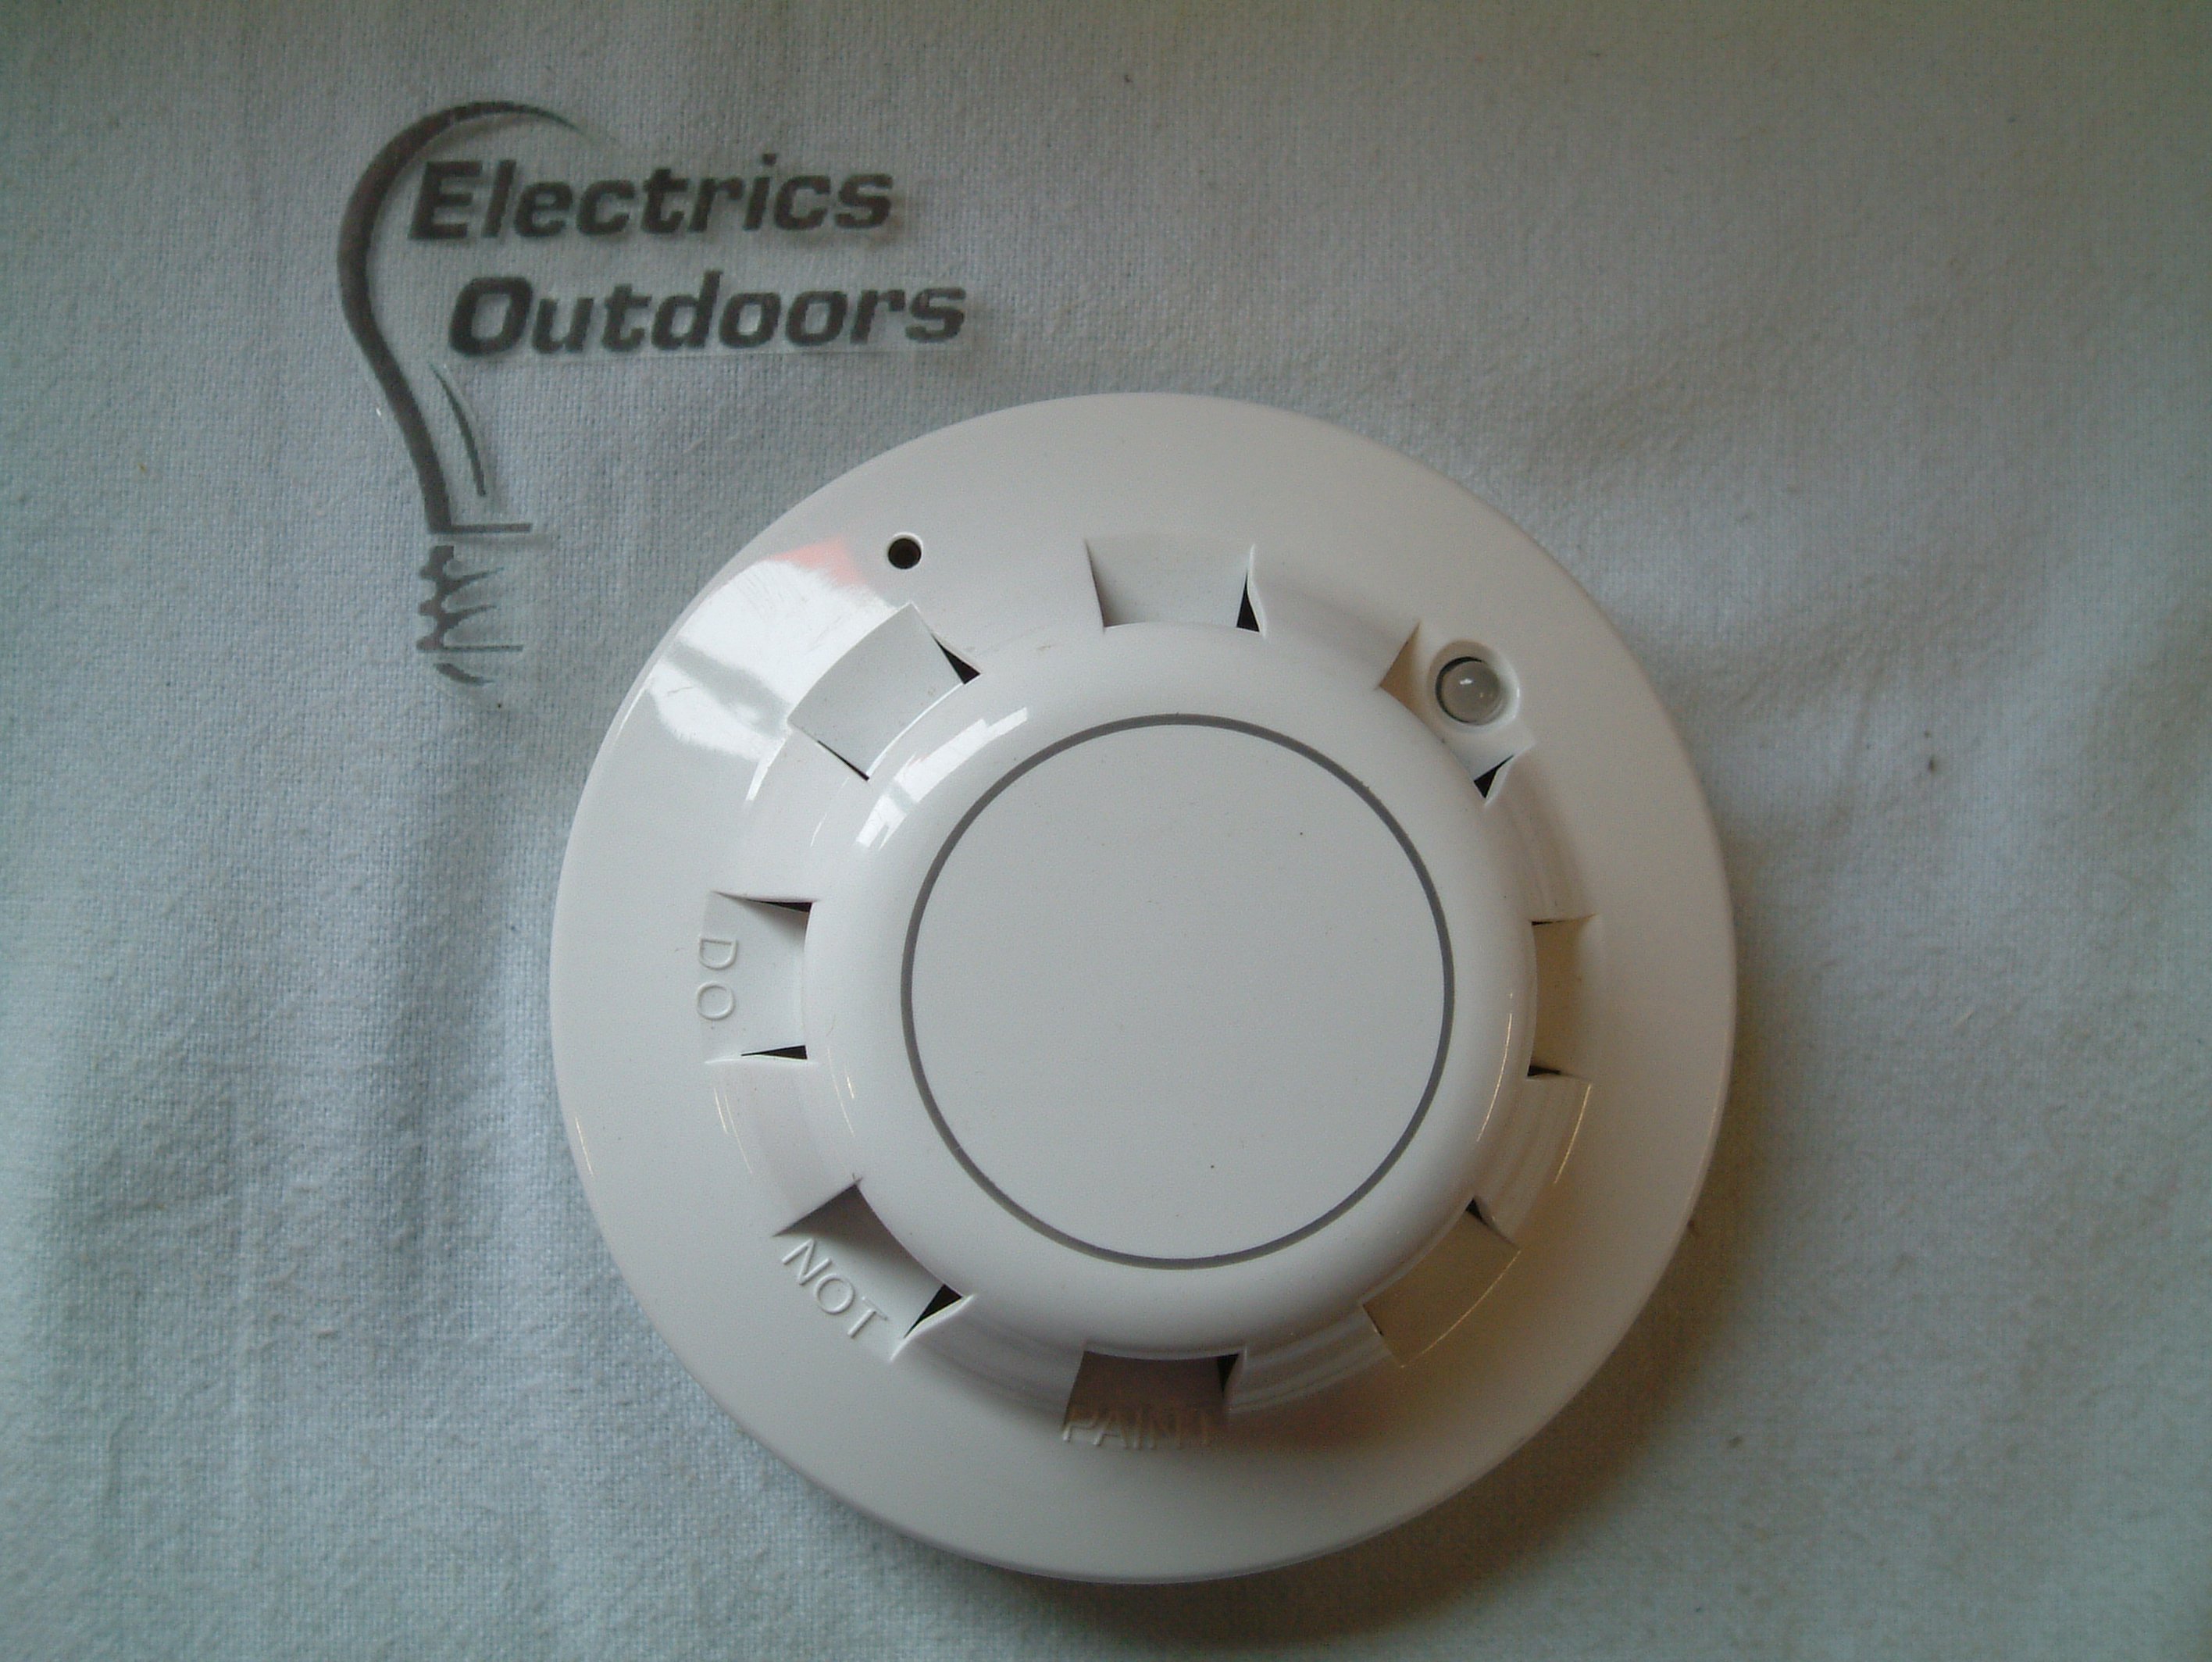 XP95 OPTICAL SMOKE DETECTOR 17 - 28 V DC 55000 - 600 APO